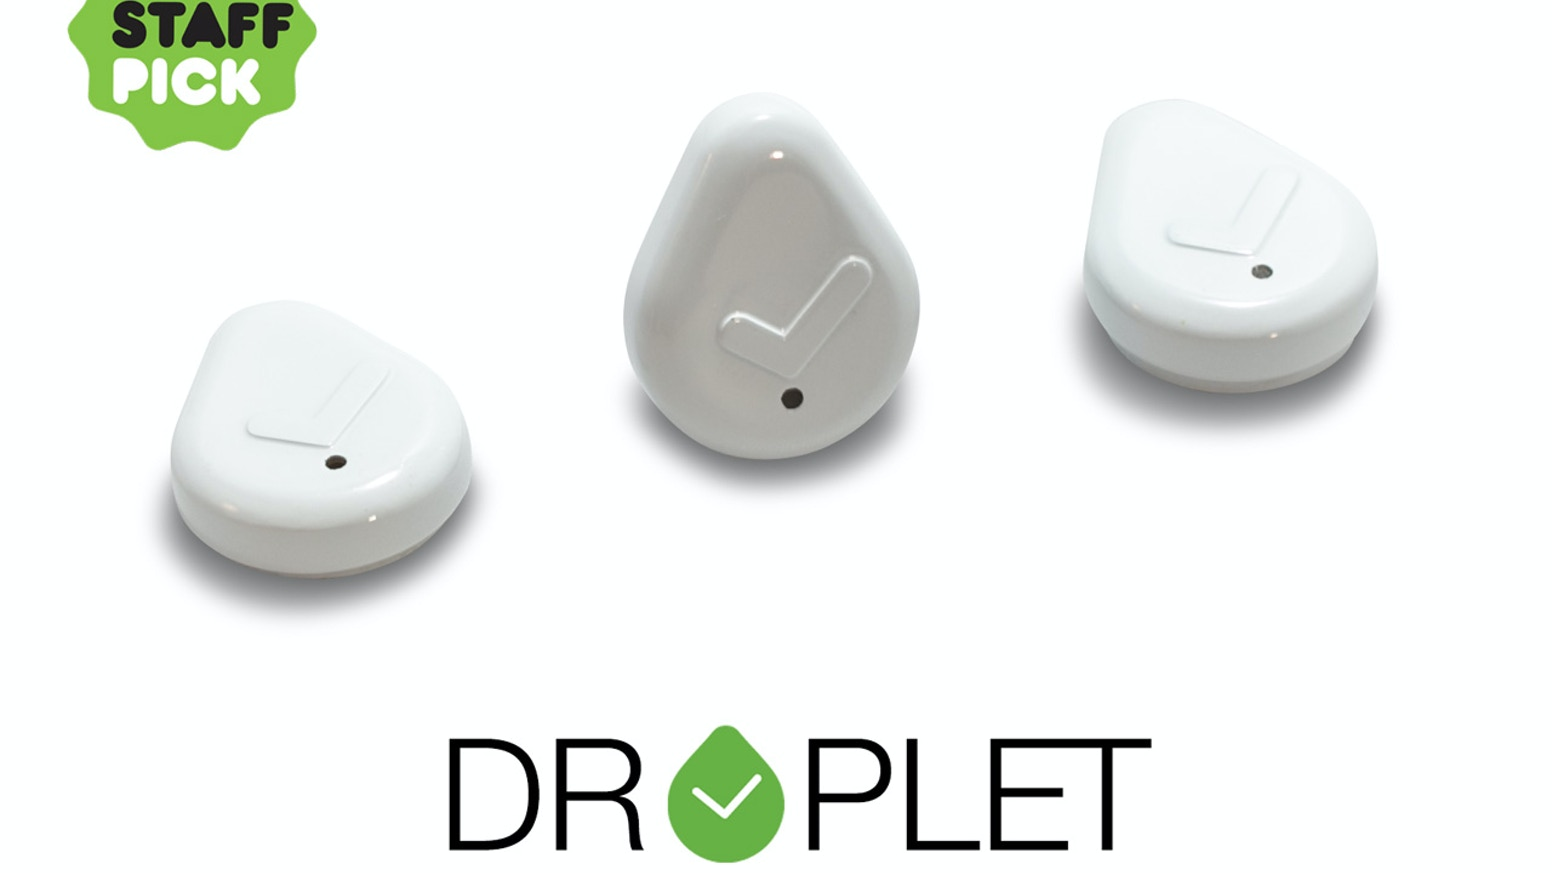 Droplet is a smart reminder that tracks important activities you don't want to forget.